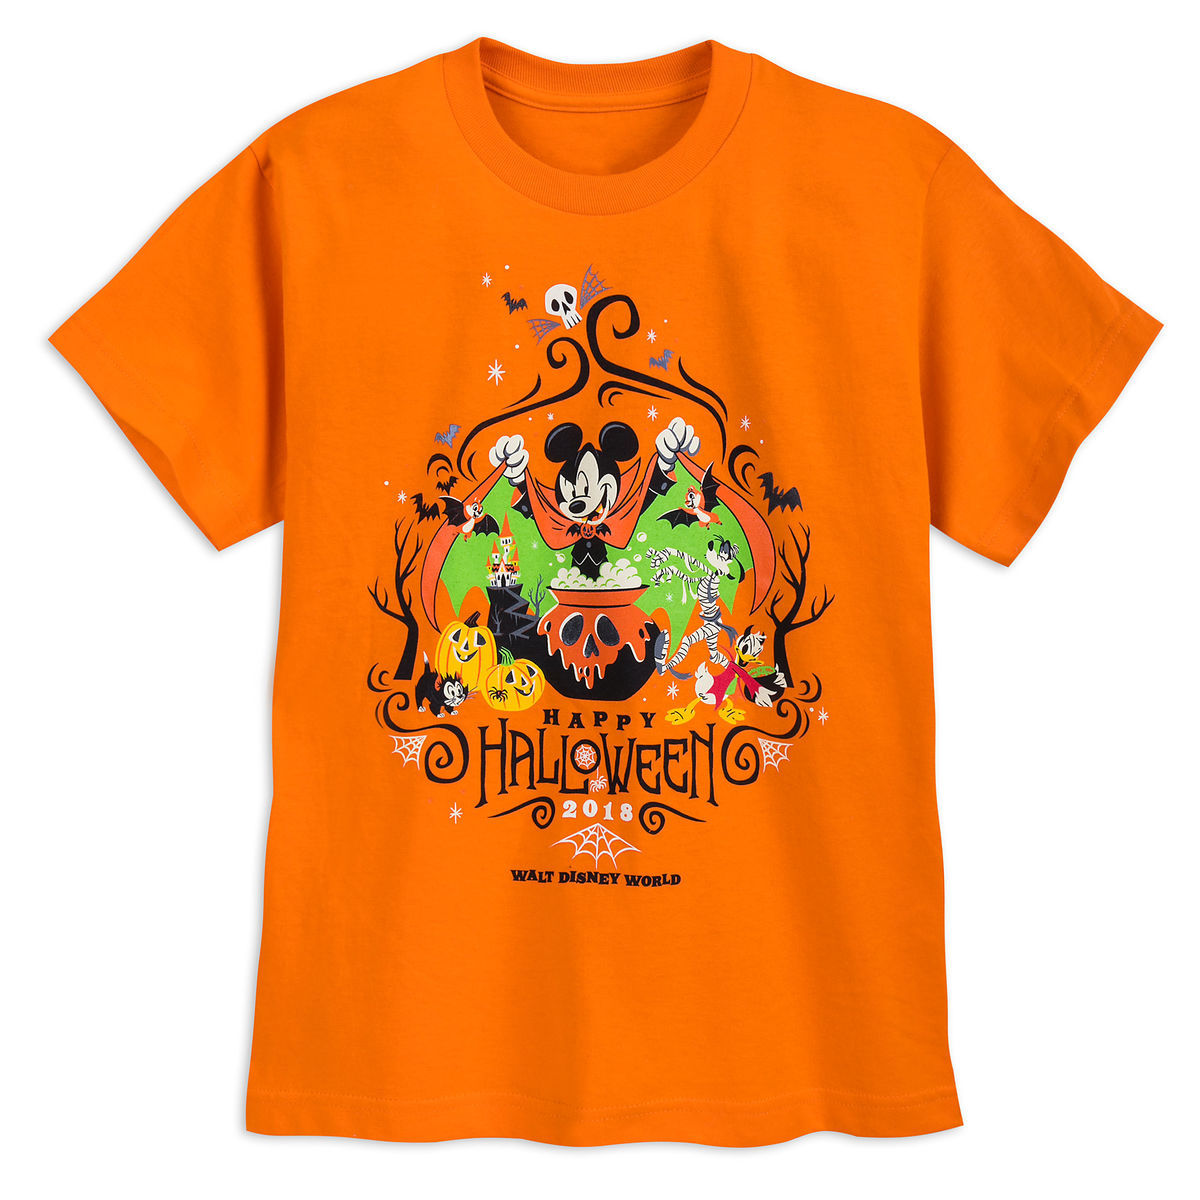 Disney Halloween T Shirts.Disney T Shirt For Boys 2018 Halloween Mickey And Friends Orange